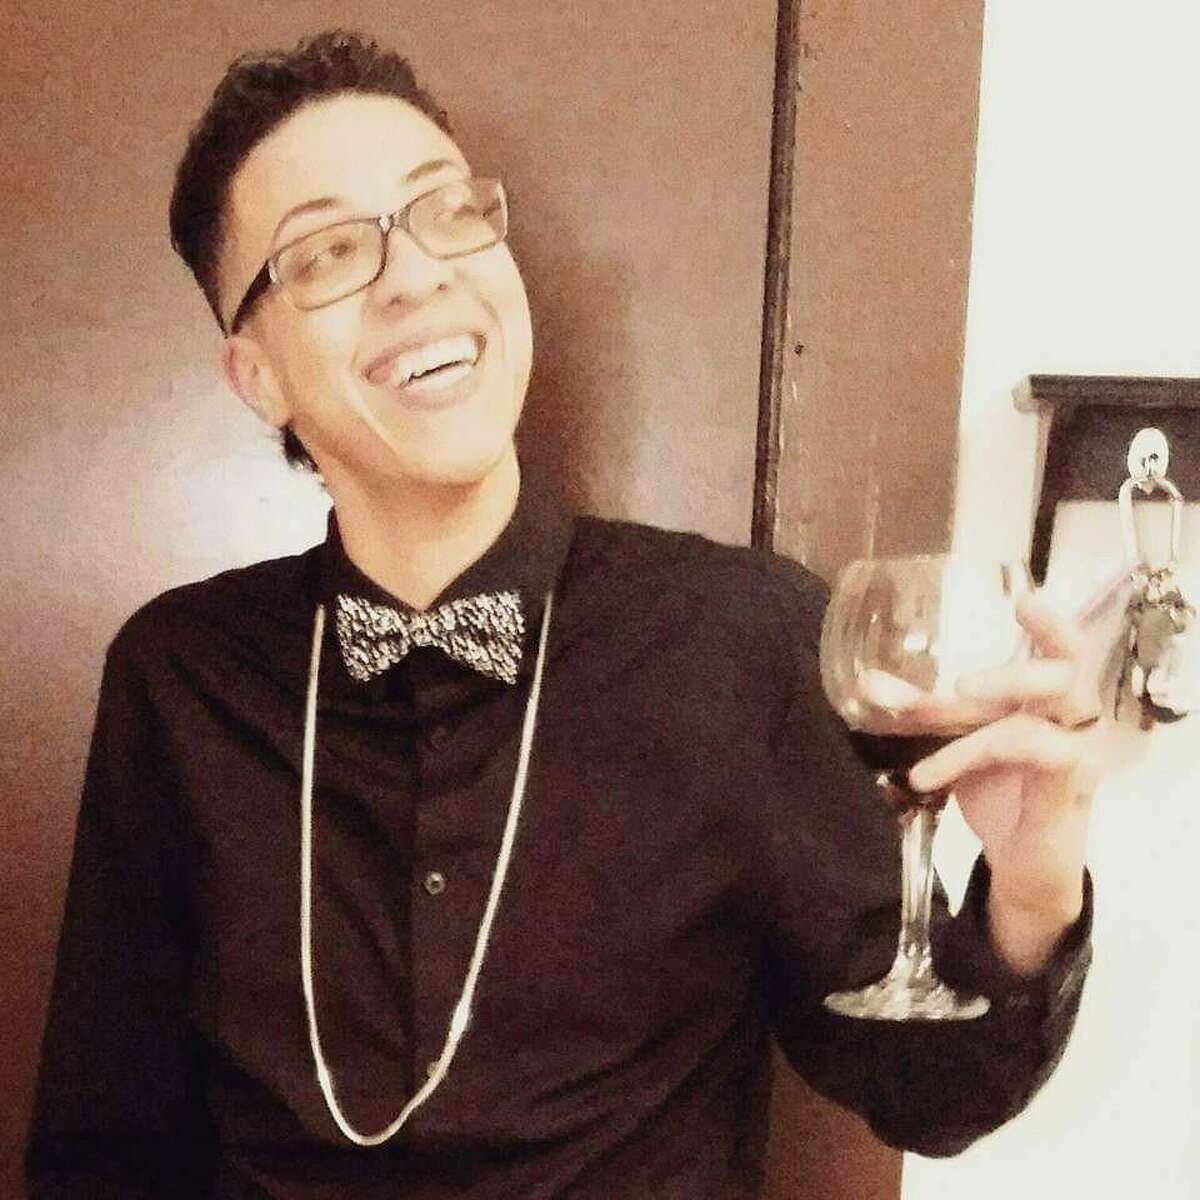 KJ Morris, a former Torrington resident, was killed while working at the Pulse nightclub in Orlando, Fla., on June 12, 2016.